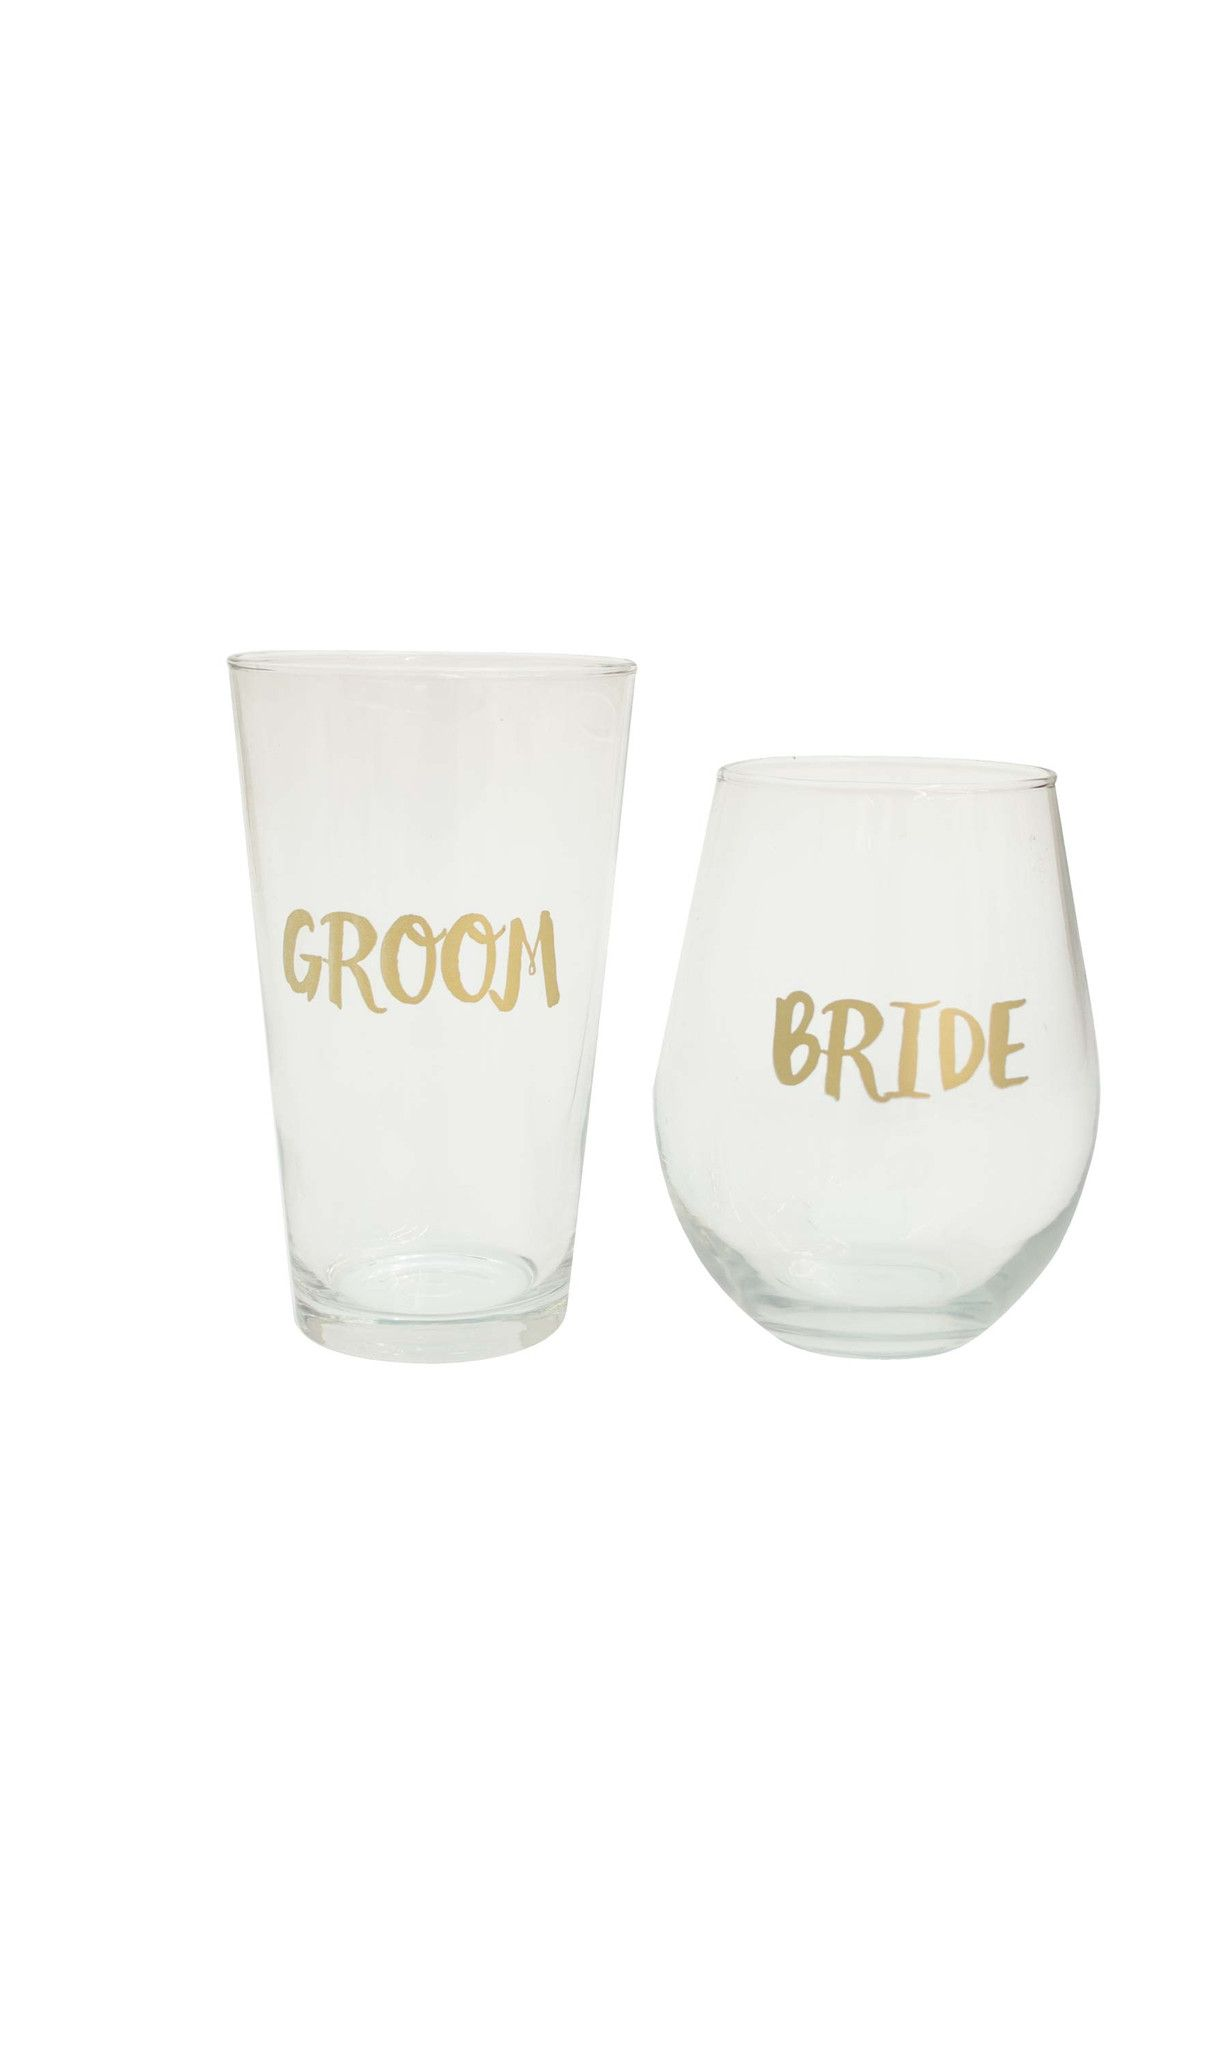 wedding candles, wedding glasses, bride and groom glasses, bride and ...